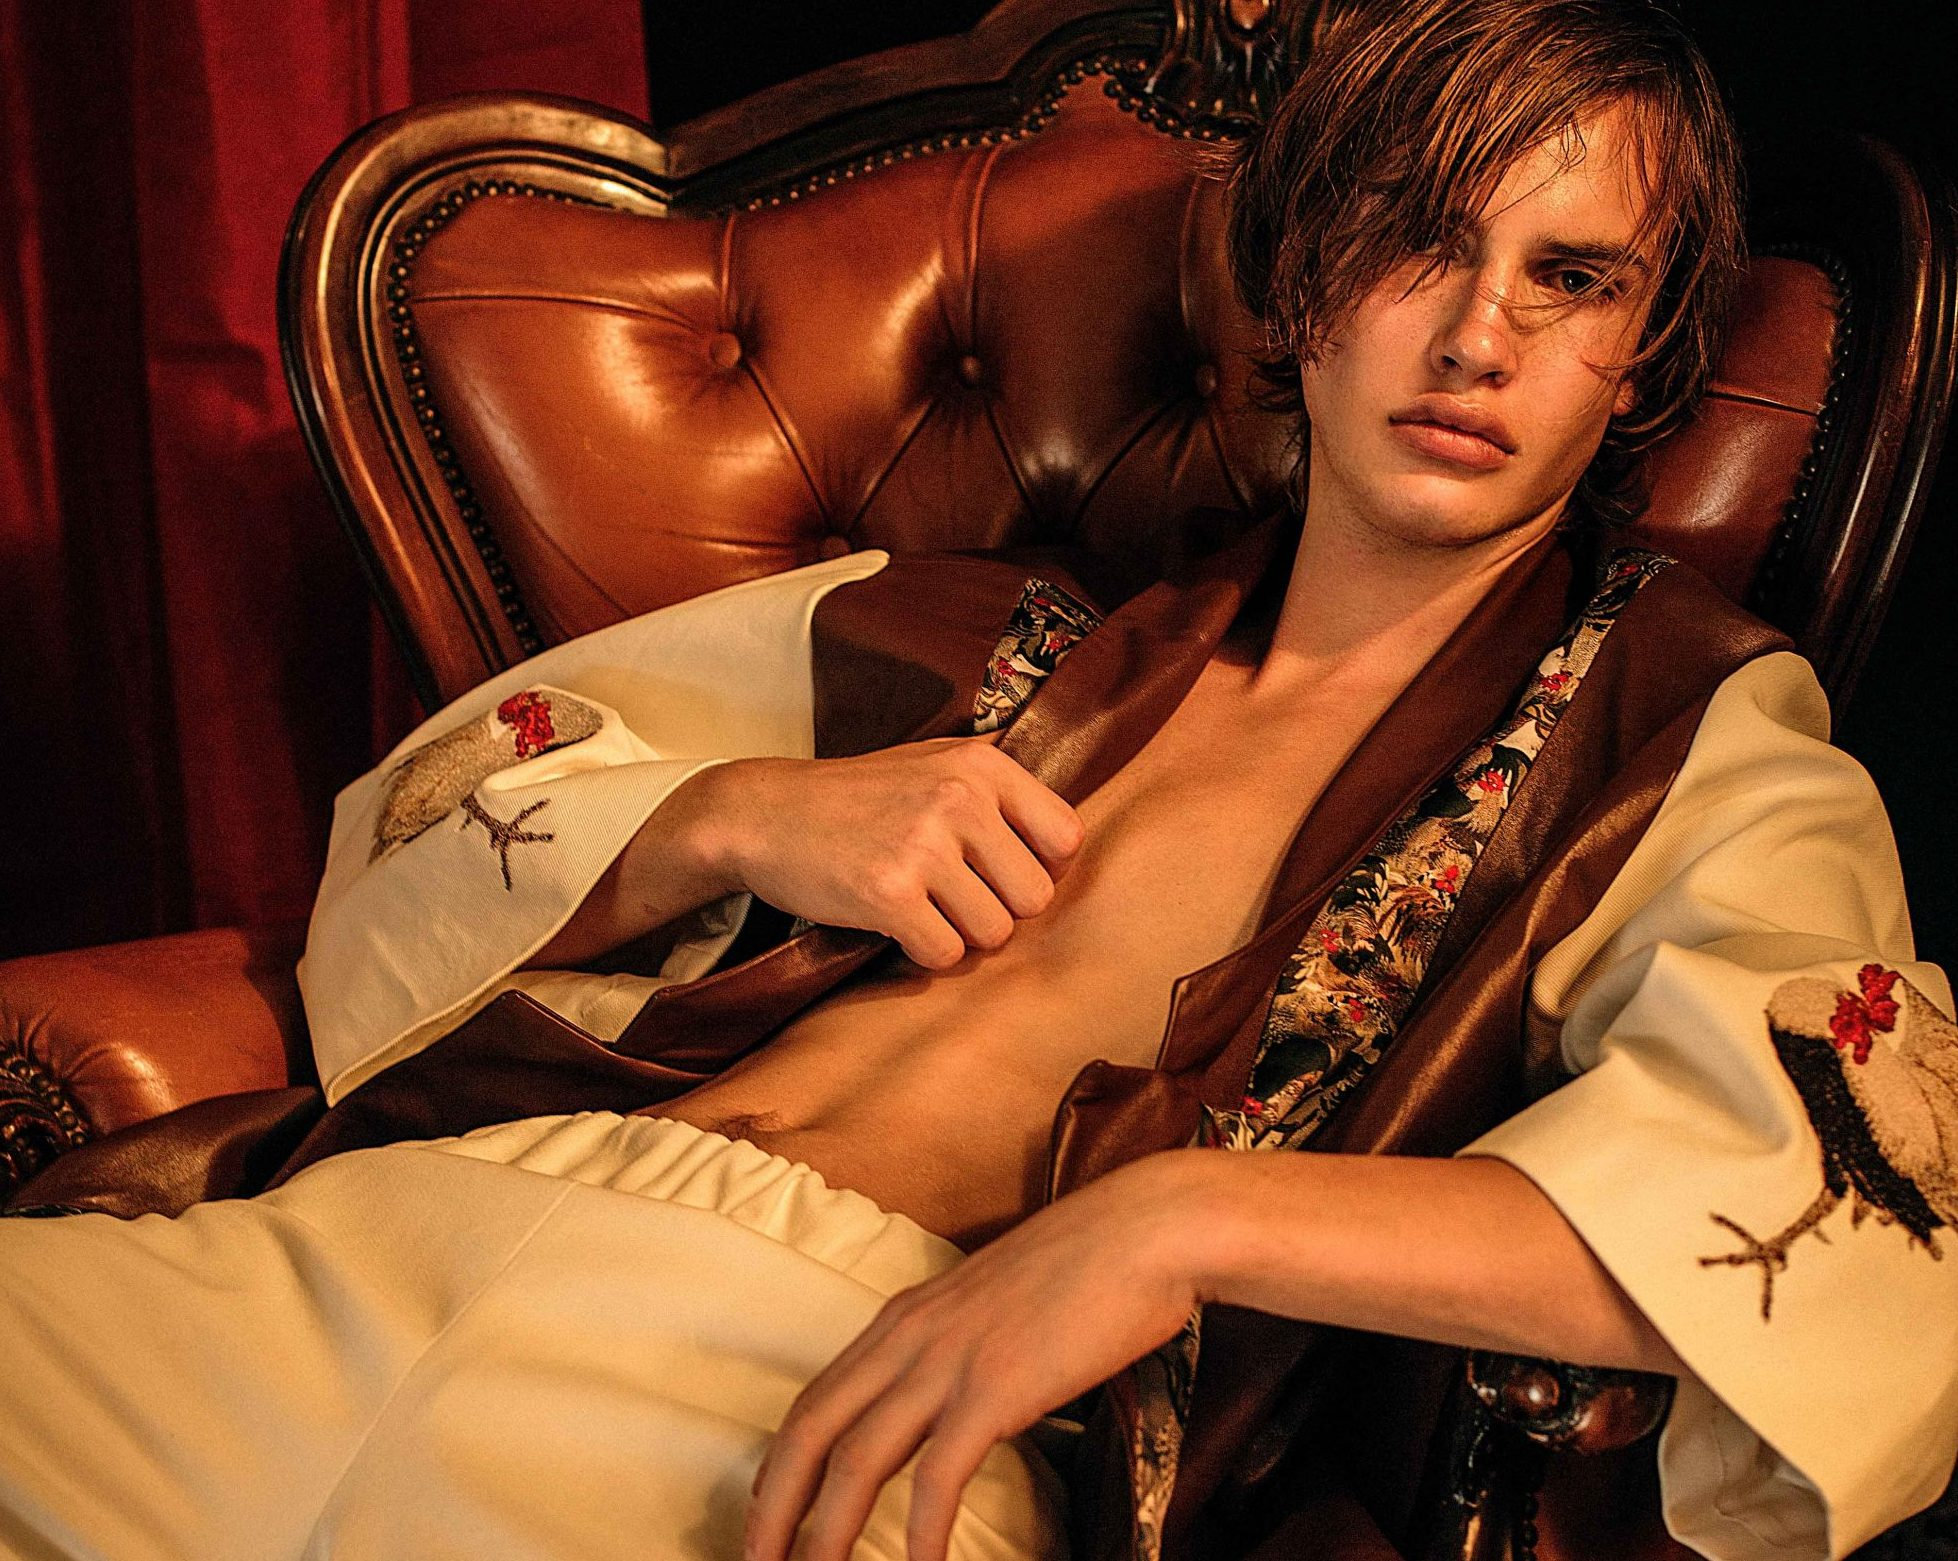 """Costanza Pirazzoli """"You want to dream, to let yourself go… """" Costanza Pirazzoli """"You want to dream, to let yourself go… """" Vanity Teen 虚荣青年 Menswear & new faces magazine"""